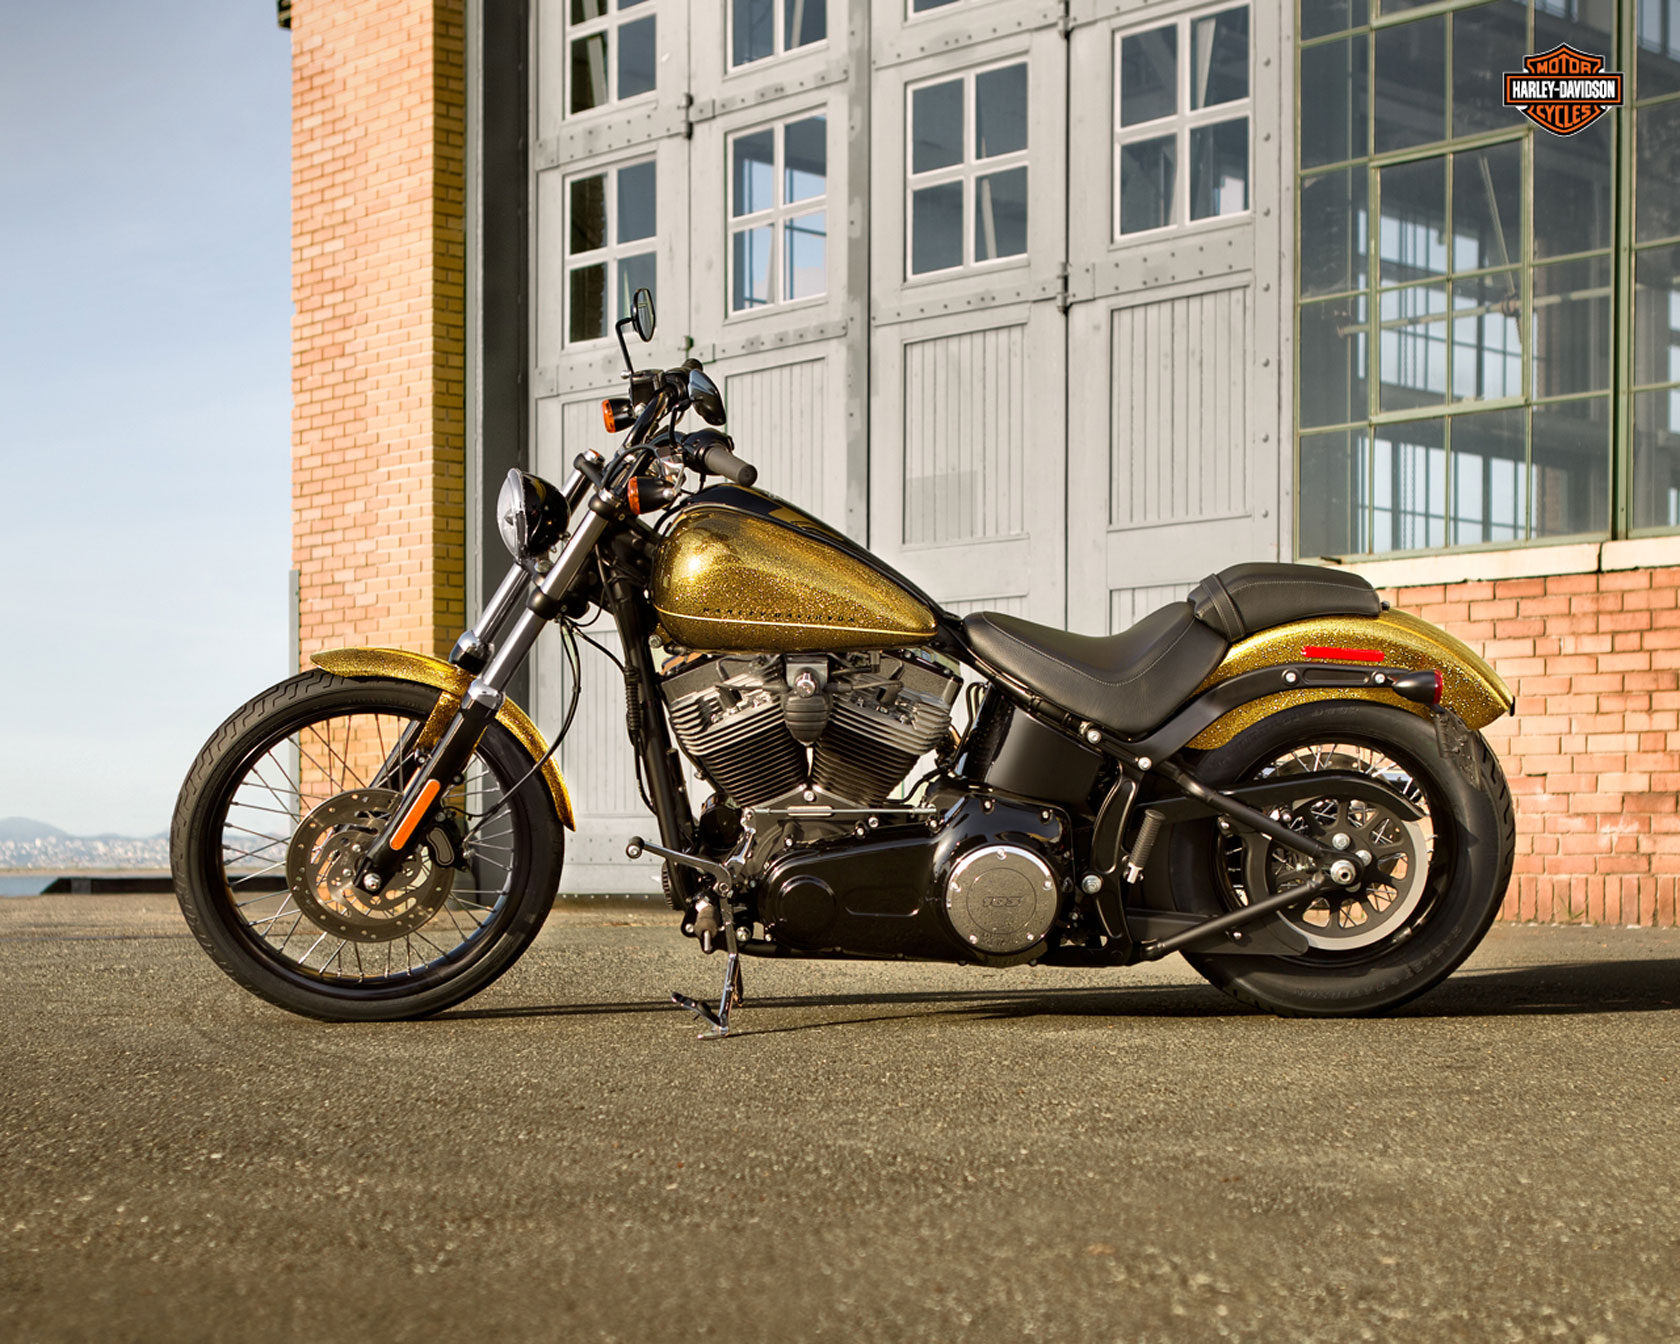 2013 Harley Davidson Fxs Blackline Review